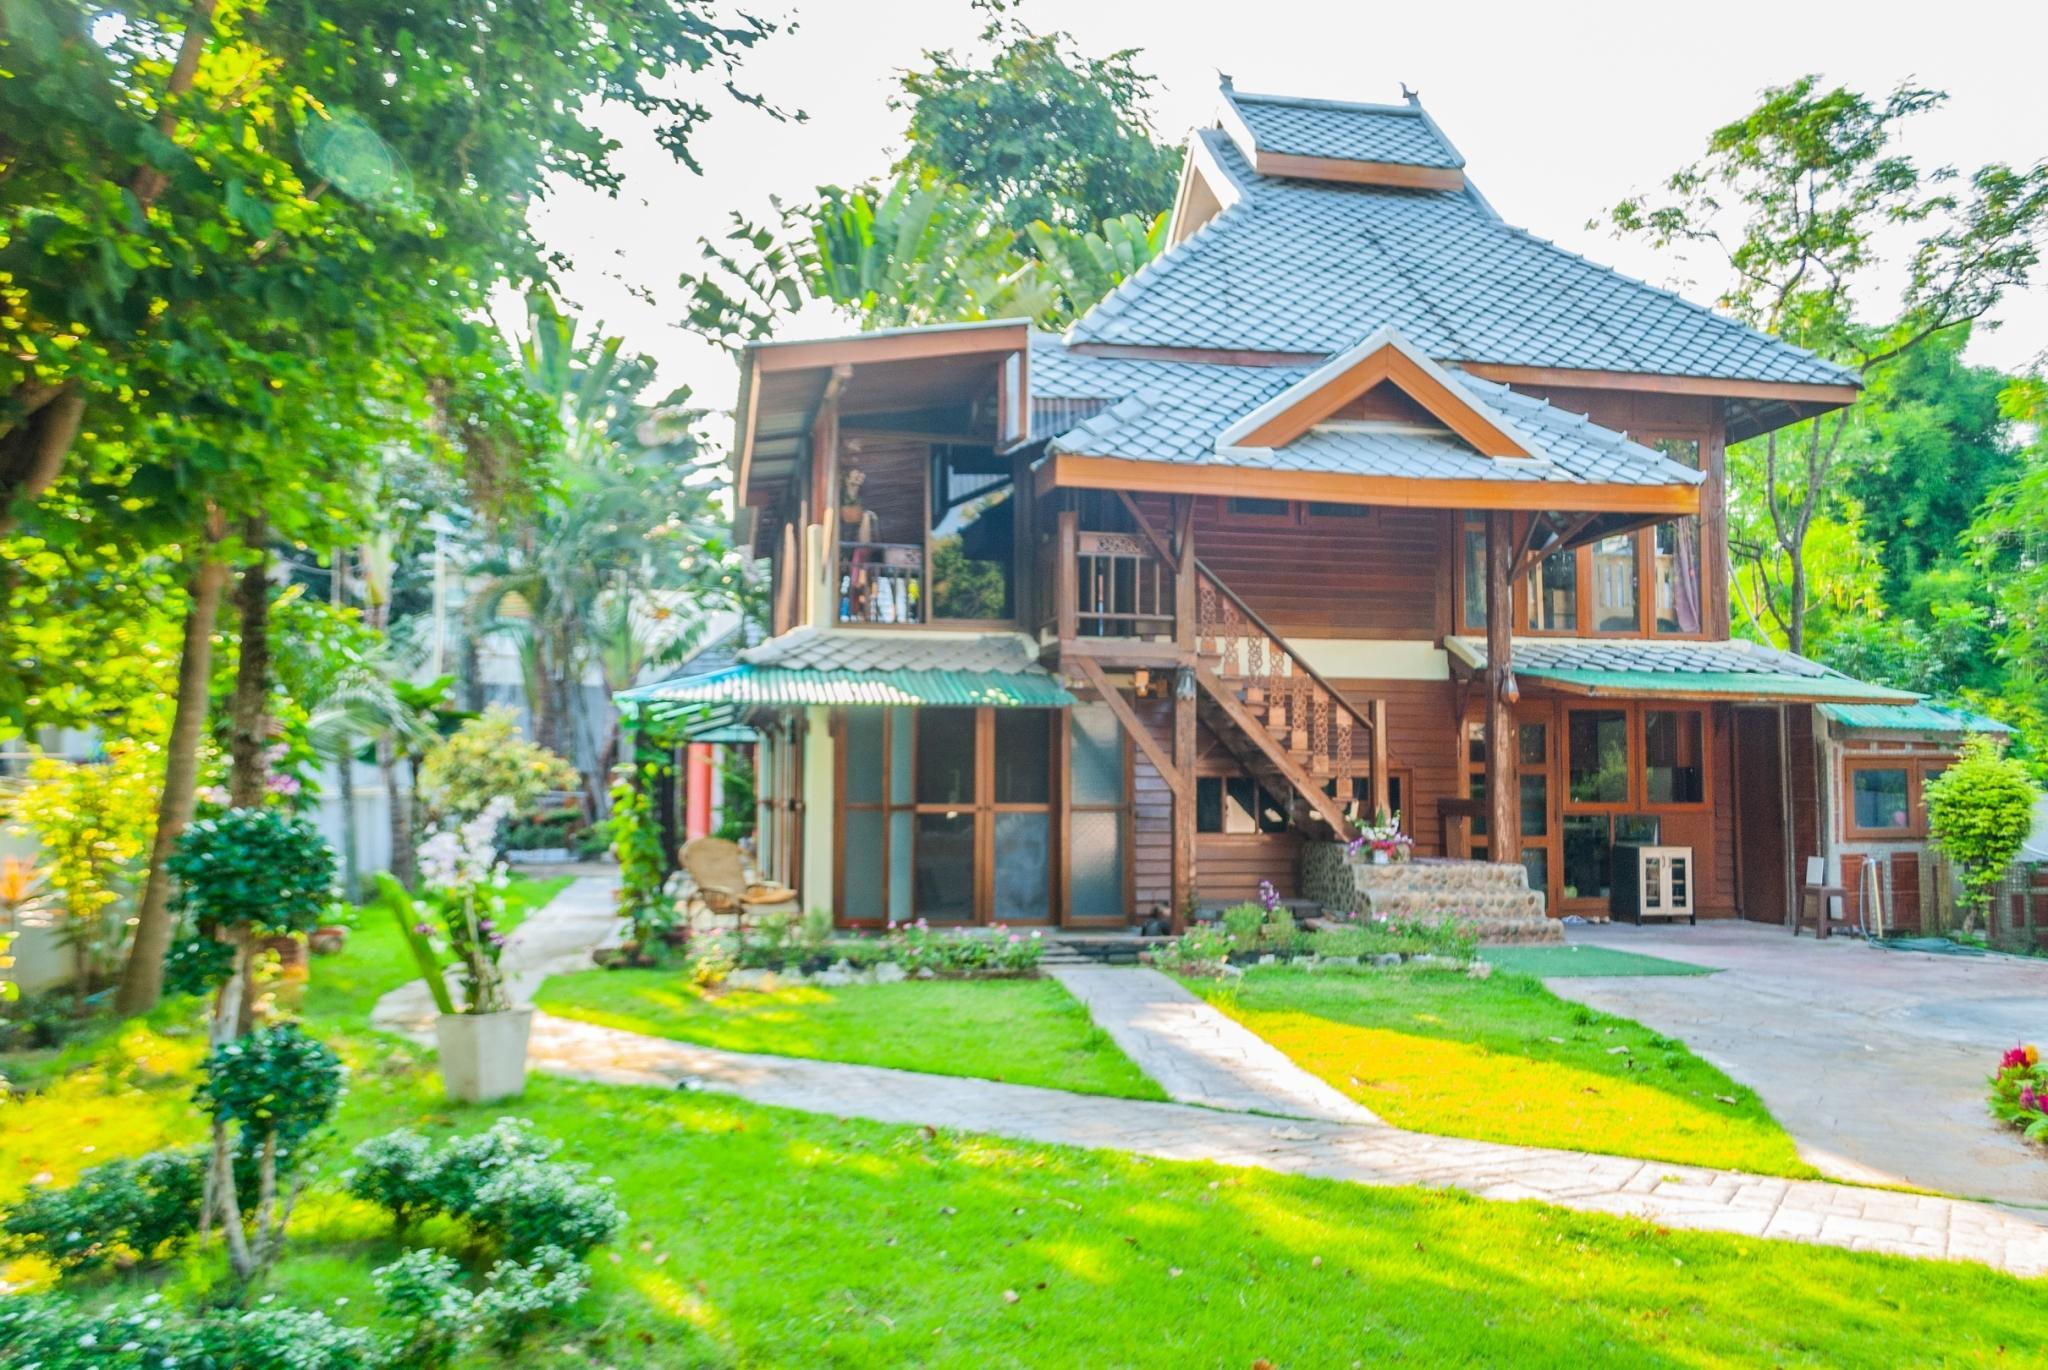 Traditional Thai Lanna Style 2 Storey Wooden House